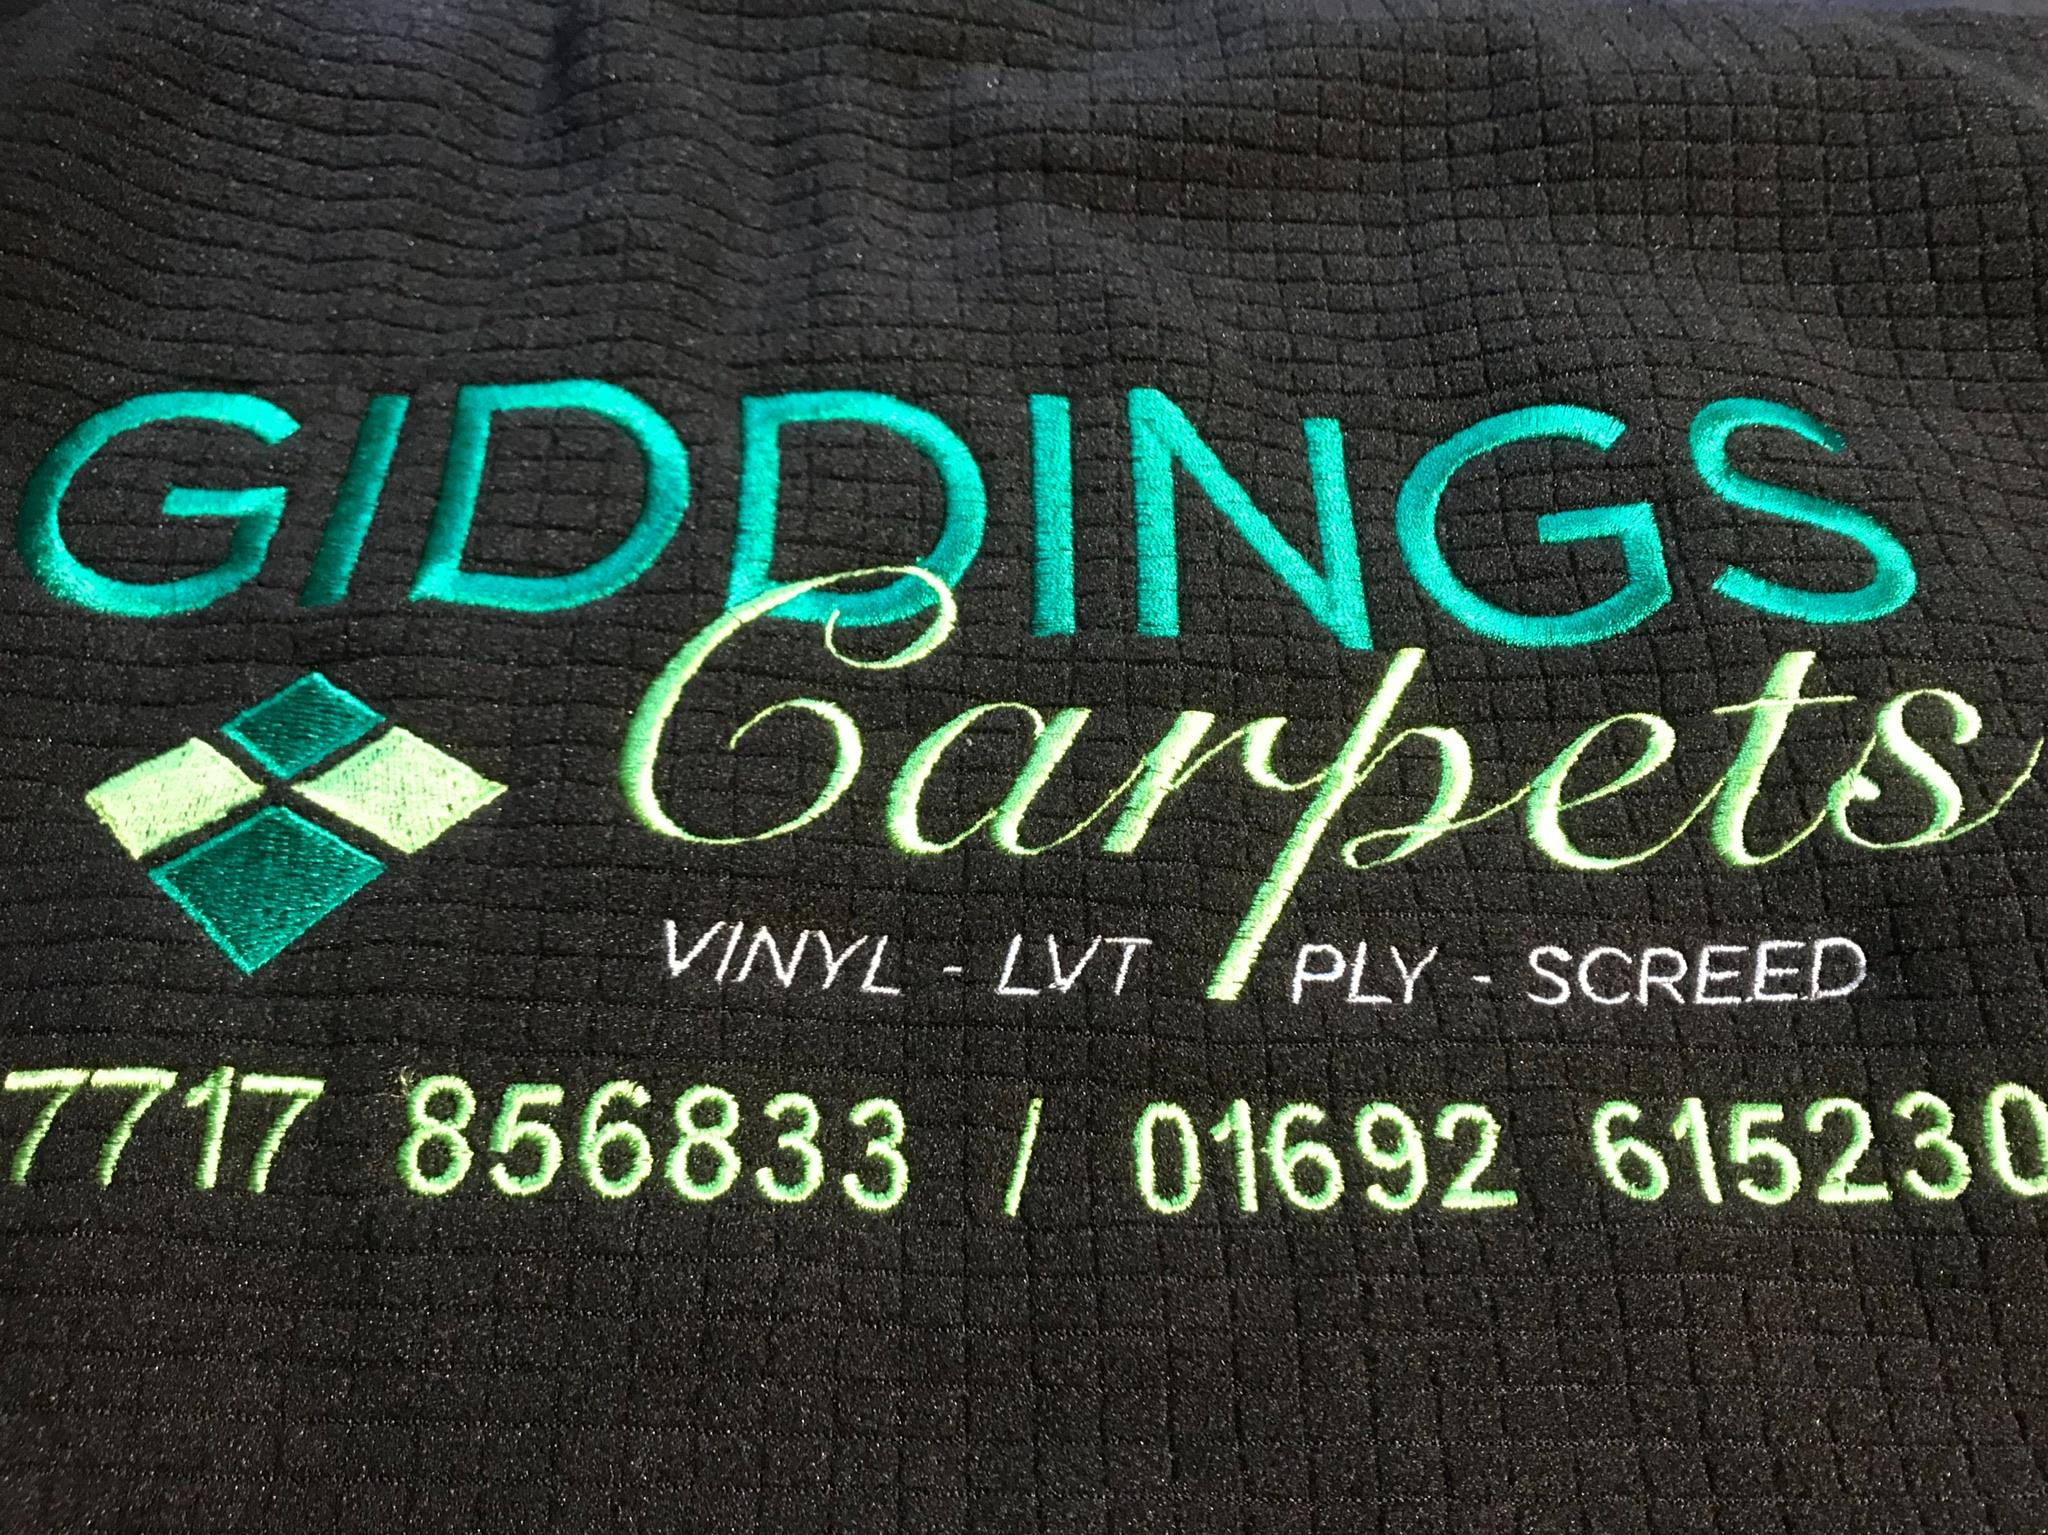 Embroidery-Products-Norfolk-6